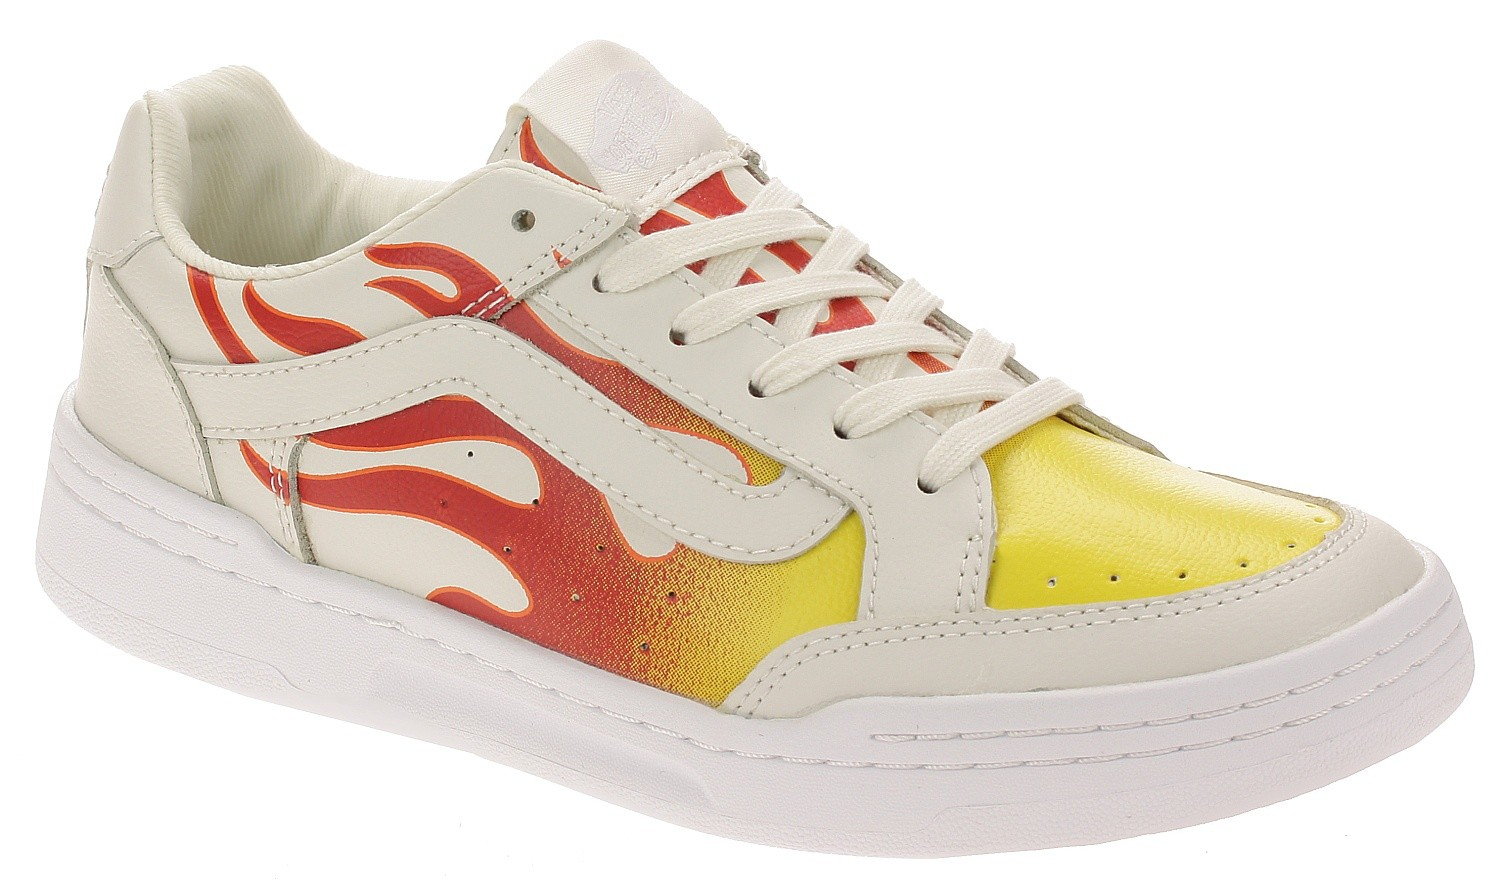 Schuhe Vans Highland - Flame/Marshmallow/Marshmallow - blackcomb-shop.eu